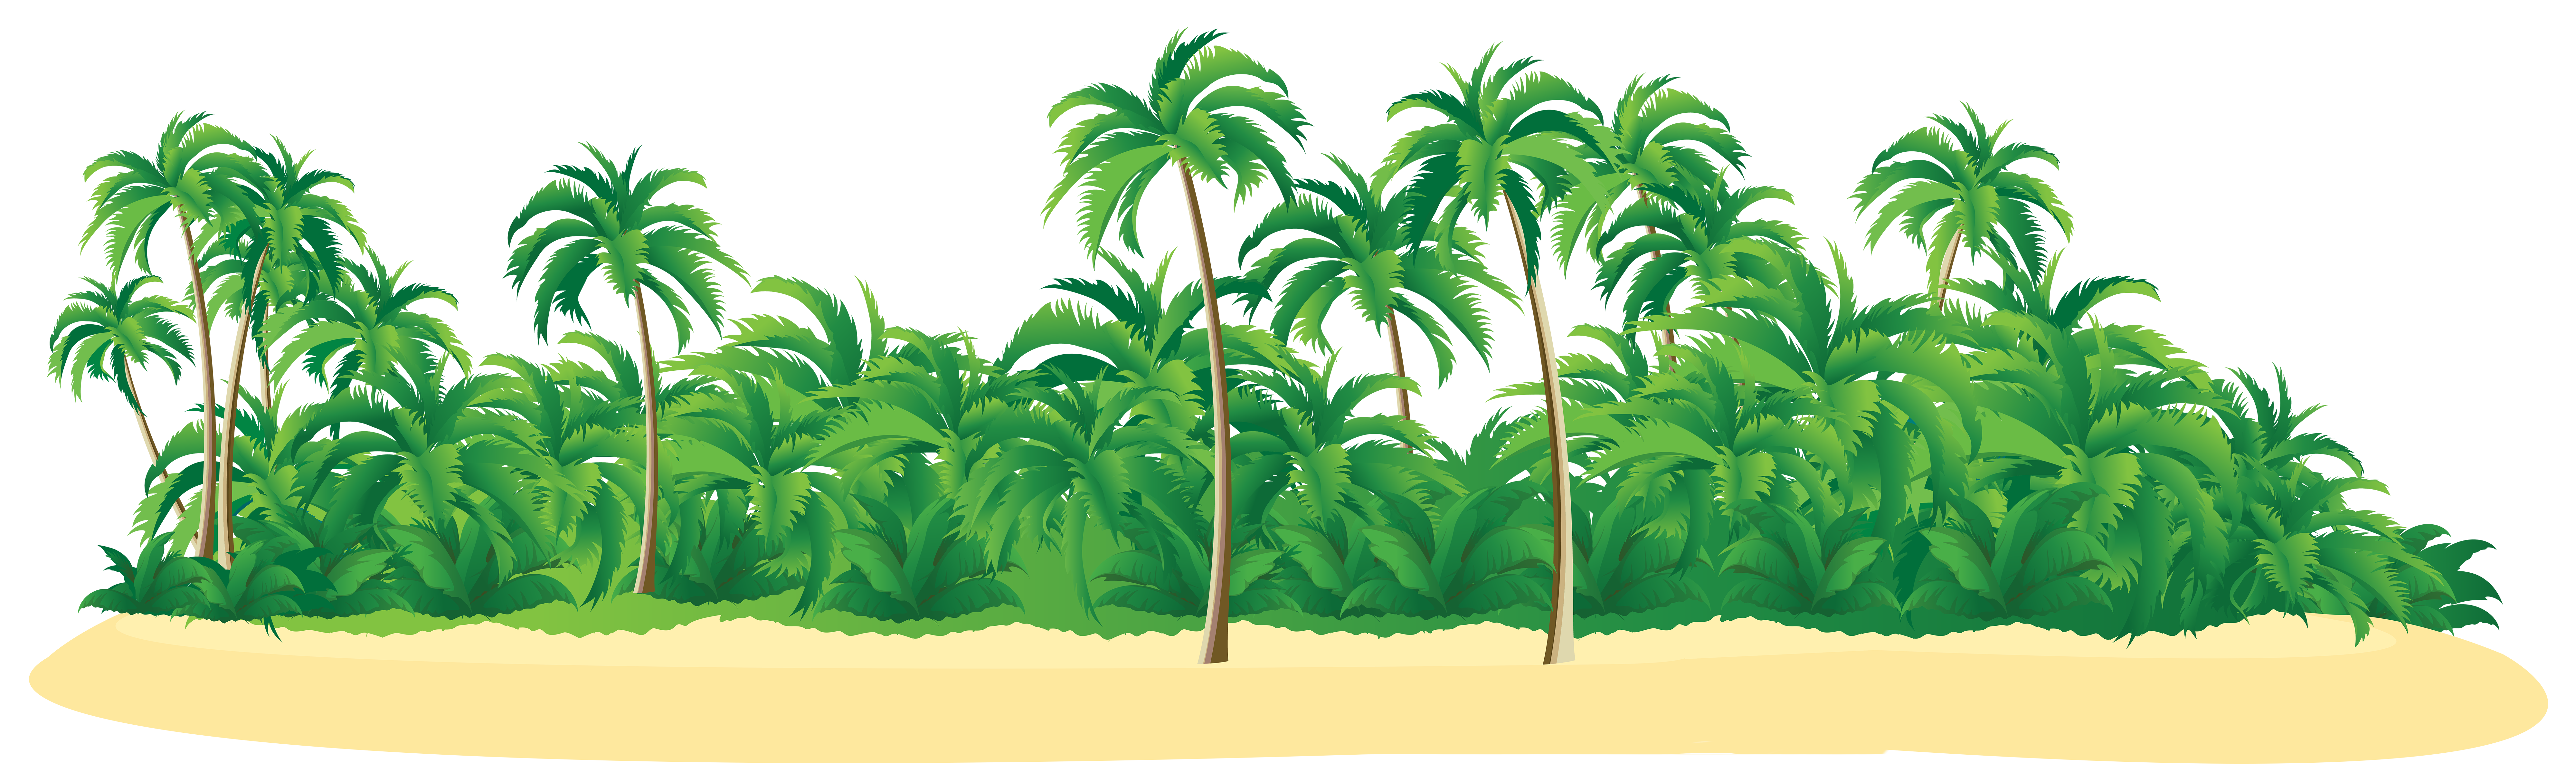 Clipart rock hard stone. Summer tropical island with